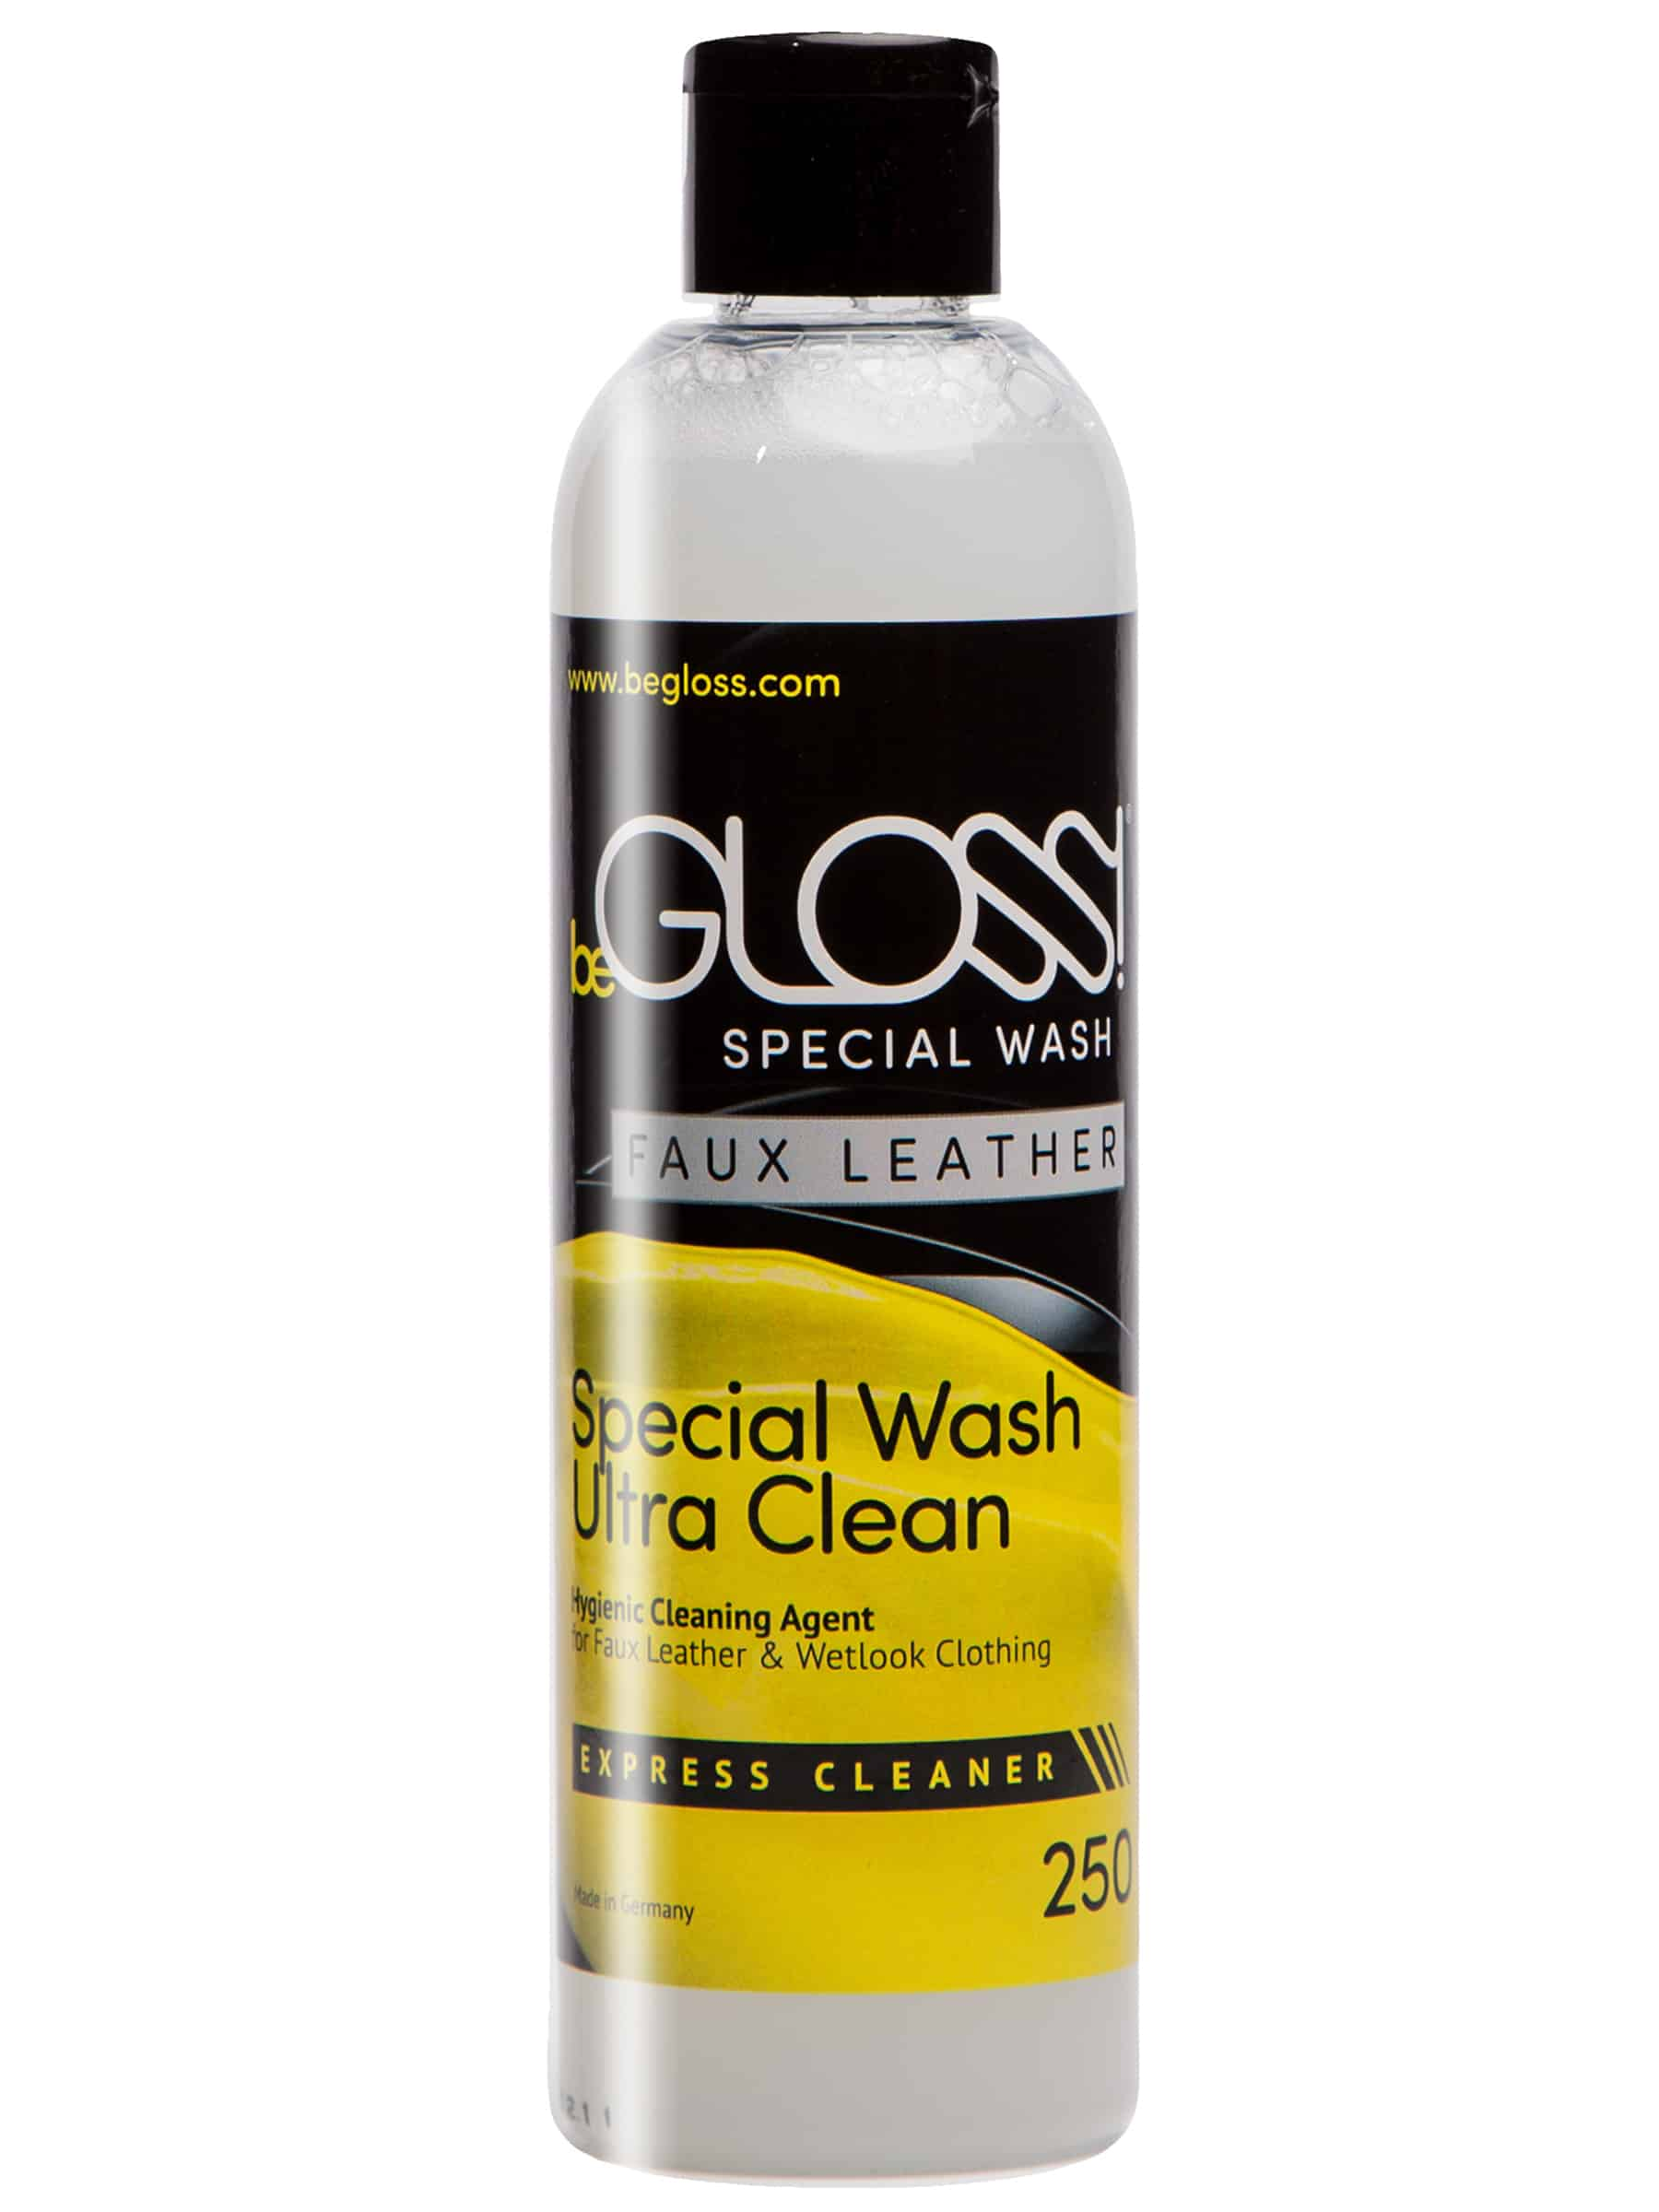 beGLOSS - Special Wash Ultra Clean Faux Leather-0